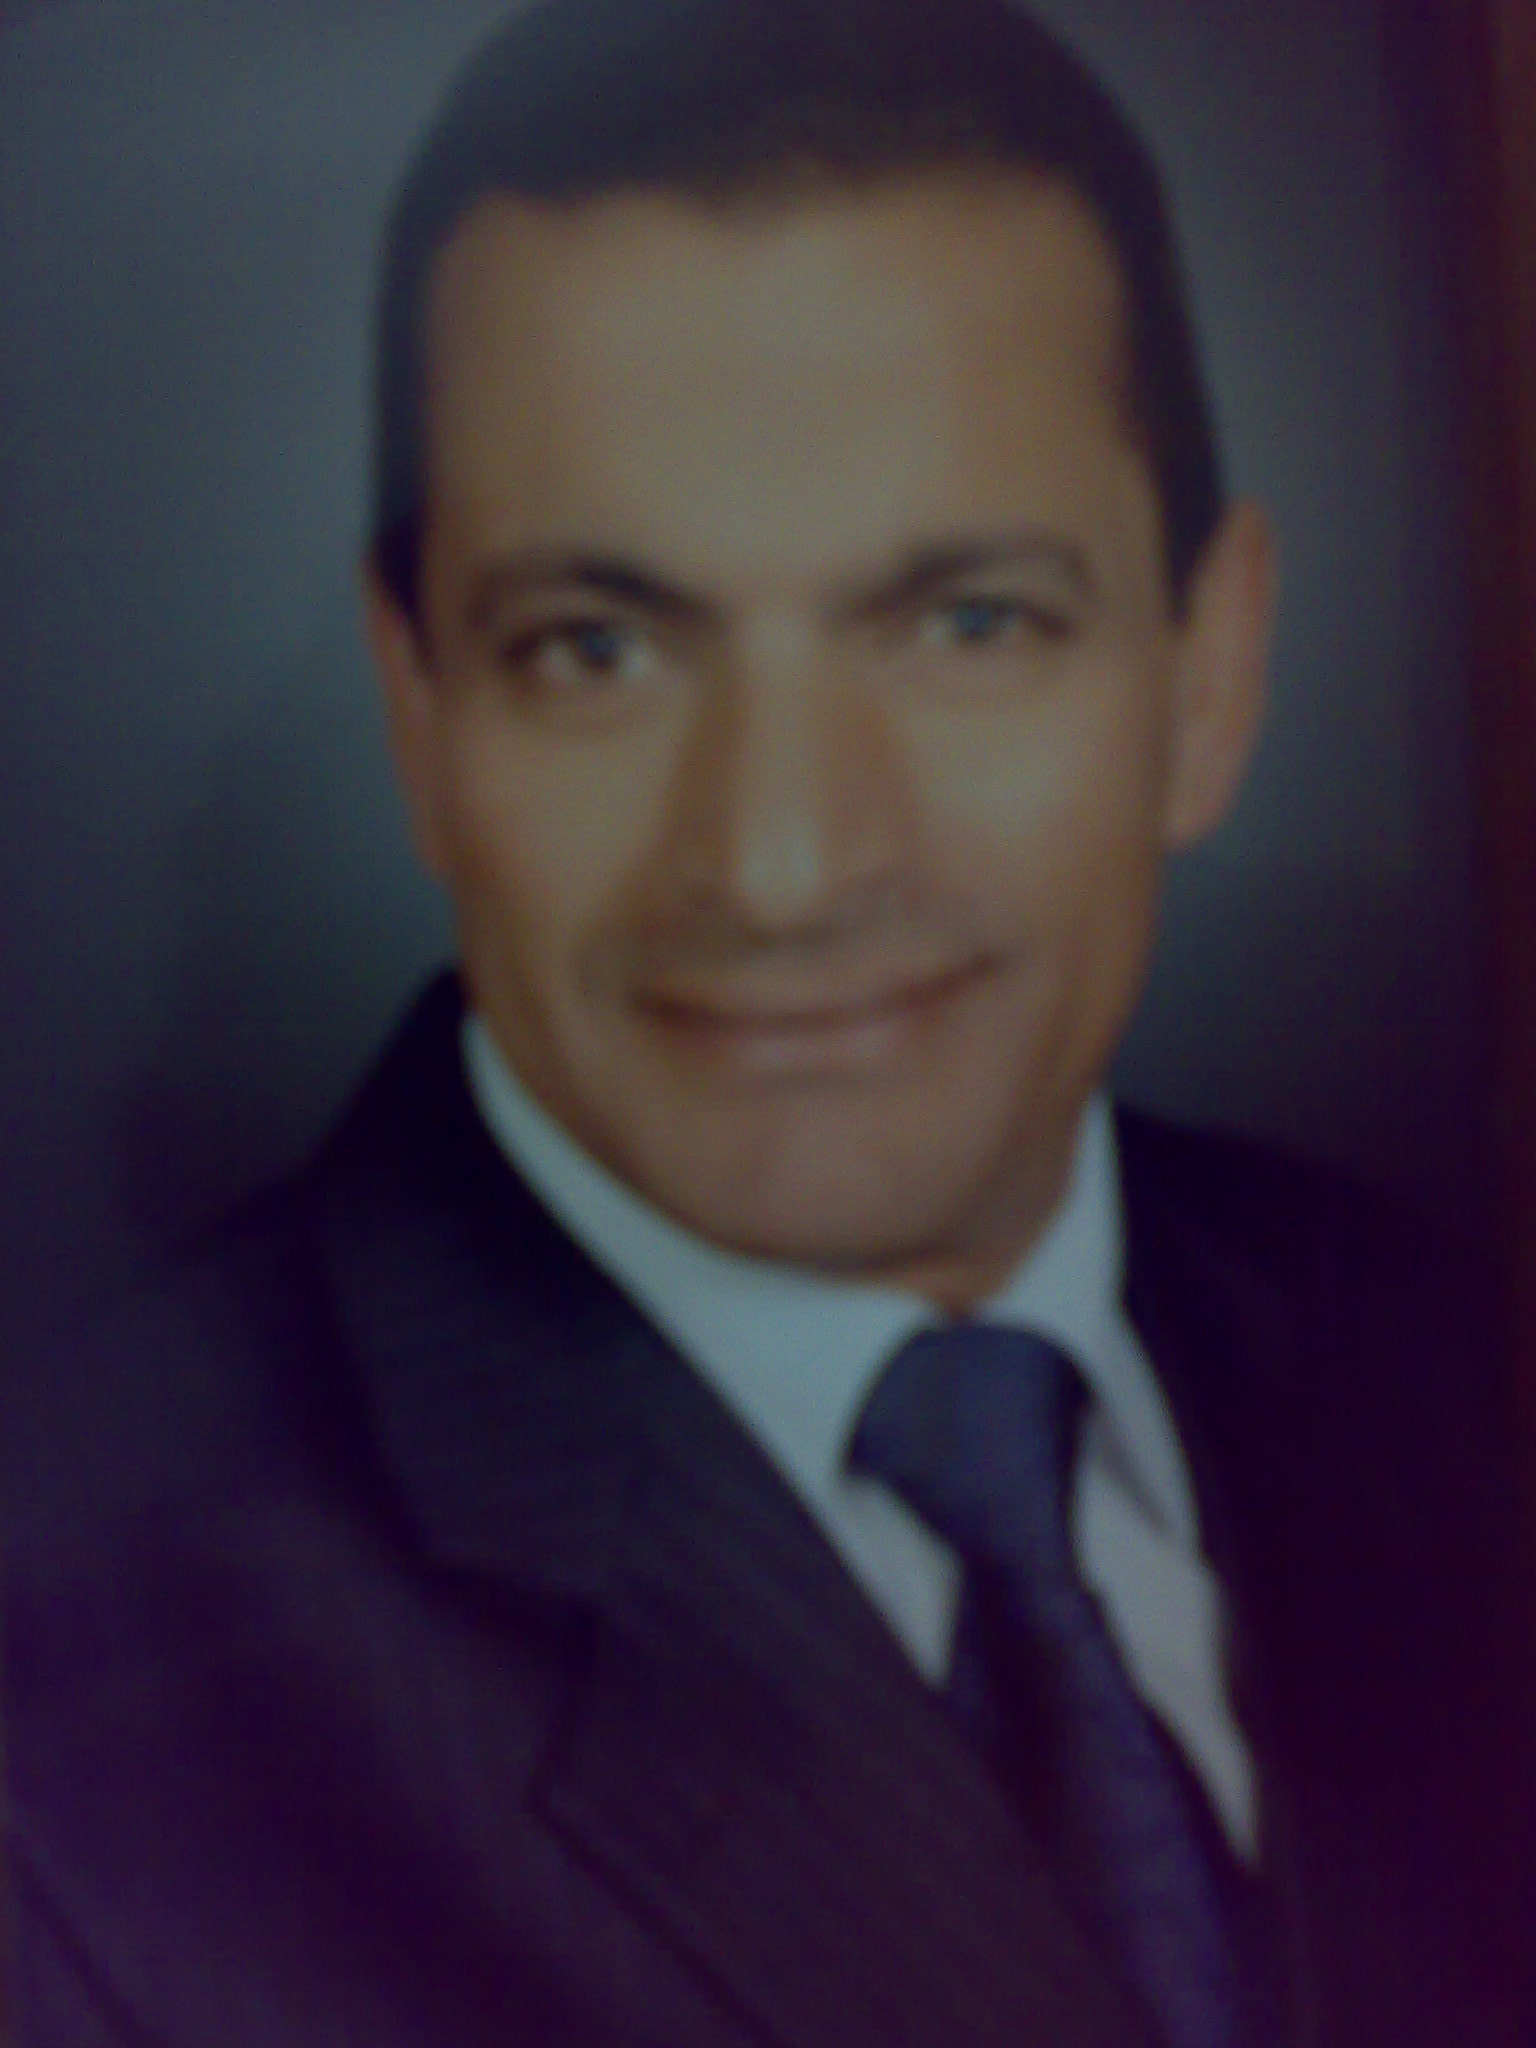 Magdy Mohamed Amin Abed